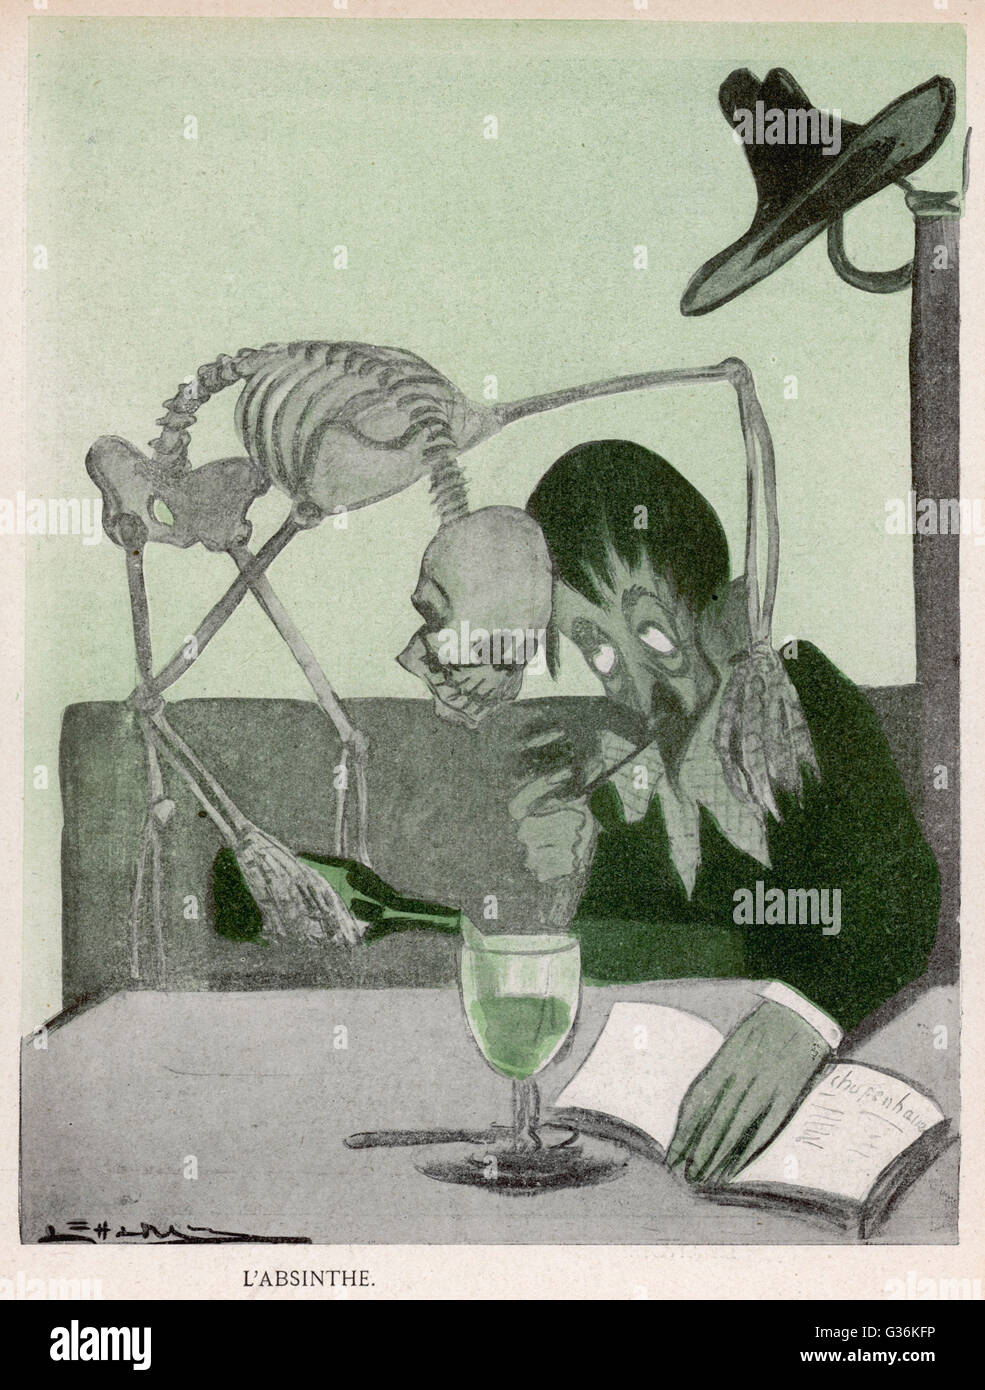 Allegory on the dangers of drinking Absinthe         Date: 1903 - Stock Image